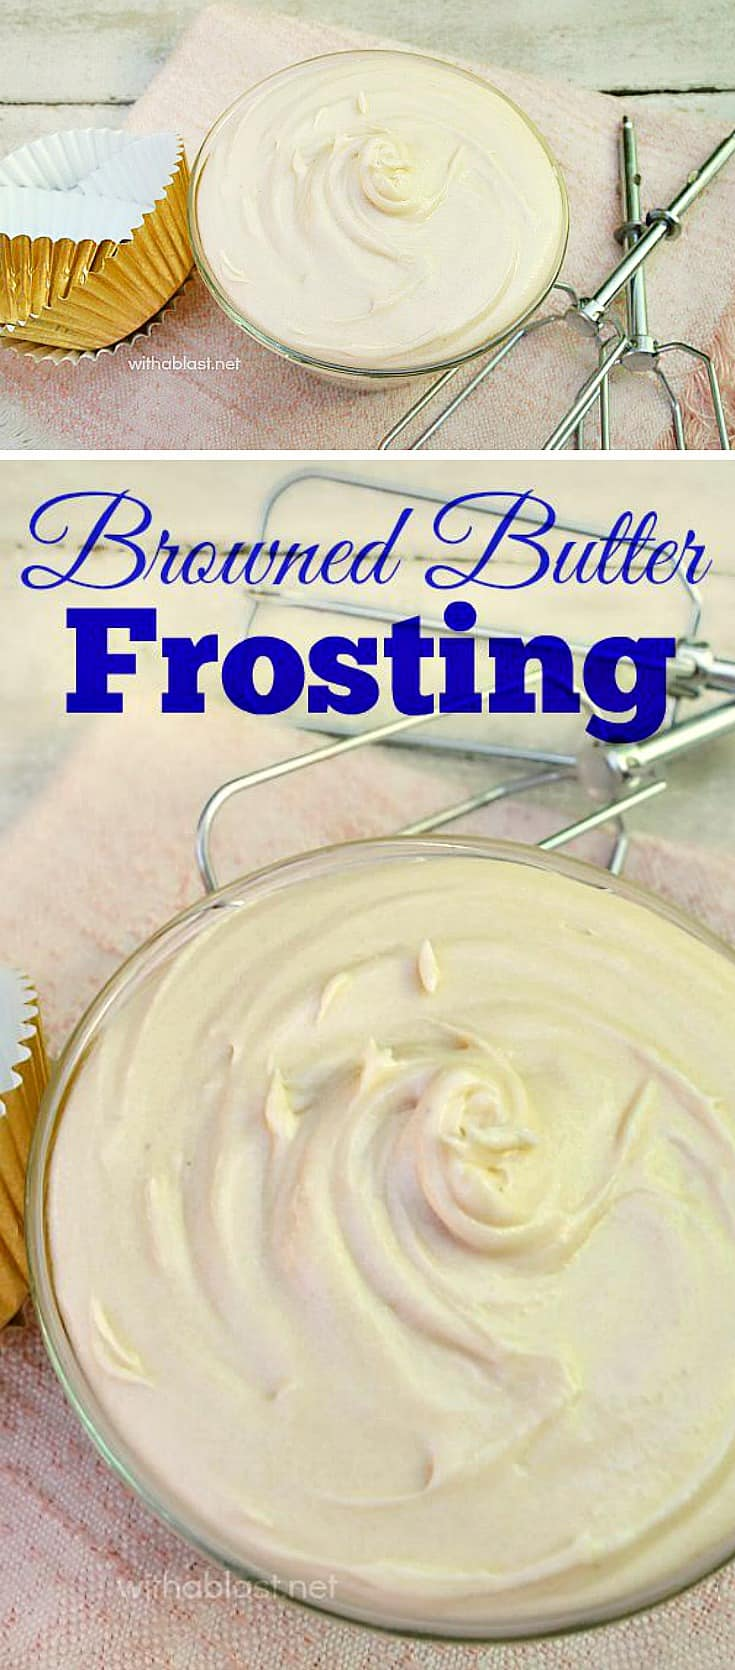 How to make the most delicious Browned Butter Frosting ! If you have never tasted (or made this) now is the time to start - a must have recipe, especially for Fall desserts #Frosting #FrostngRecipe #FallFrosting #BrownedButterFrosting #IcingRecipe #FallIcingRecipe